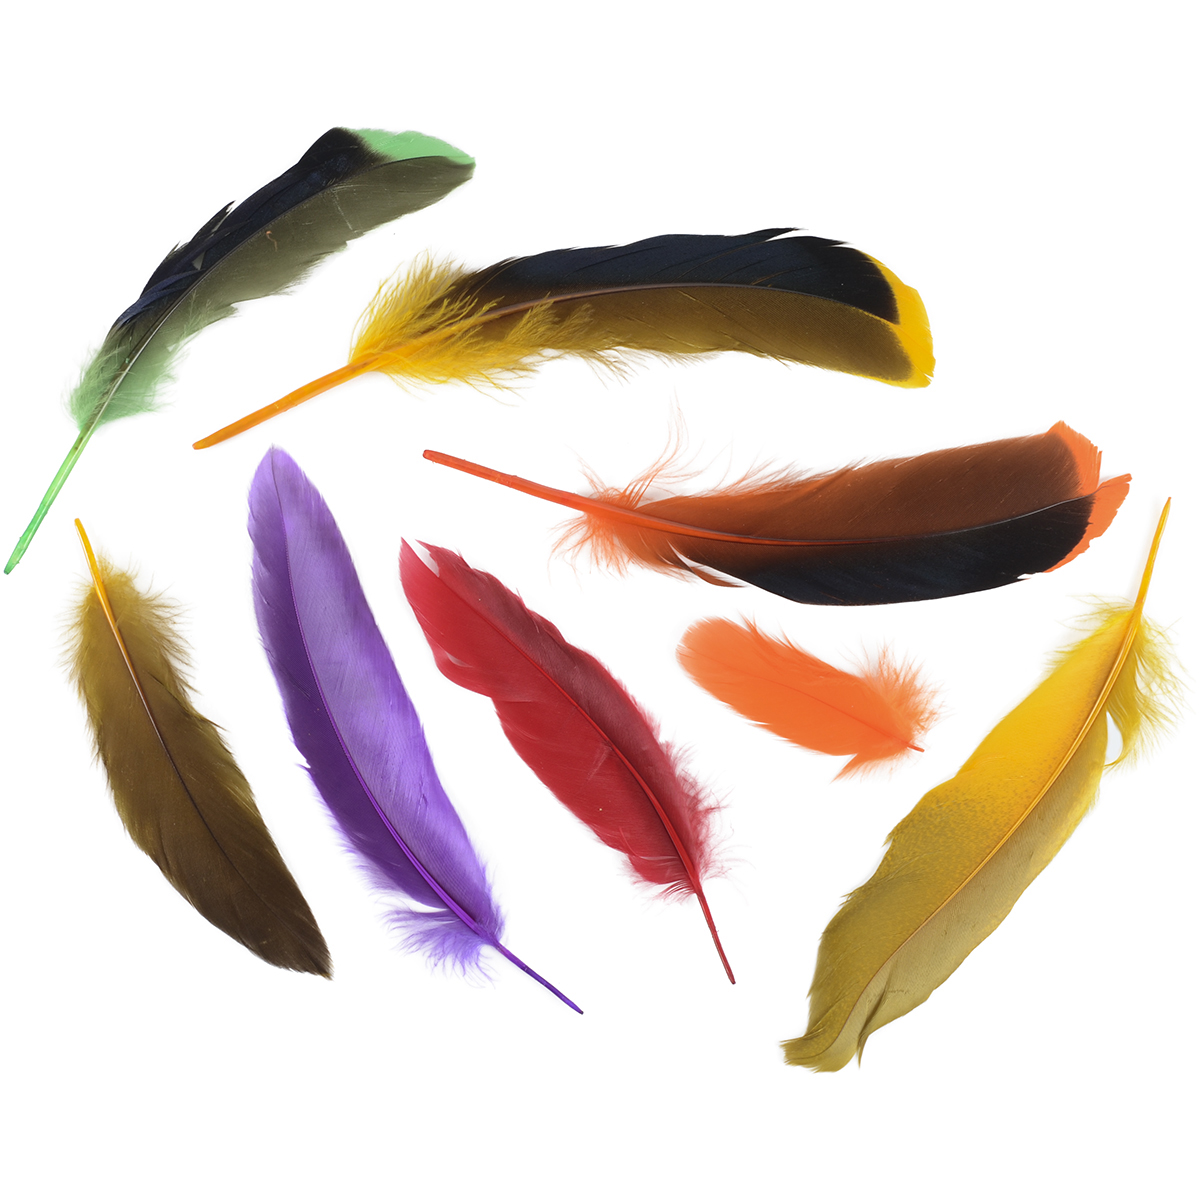 Duck Satinettes Feathers .05oz-Tropical Dyed Over Natural